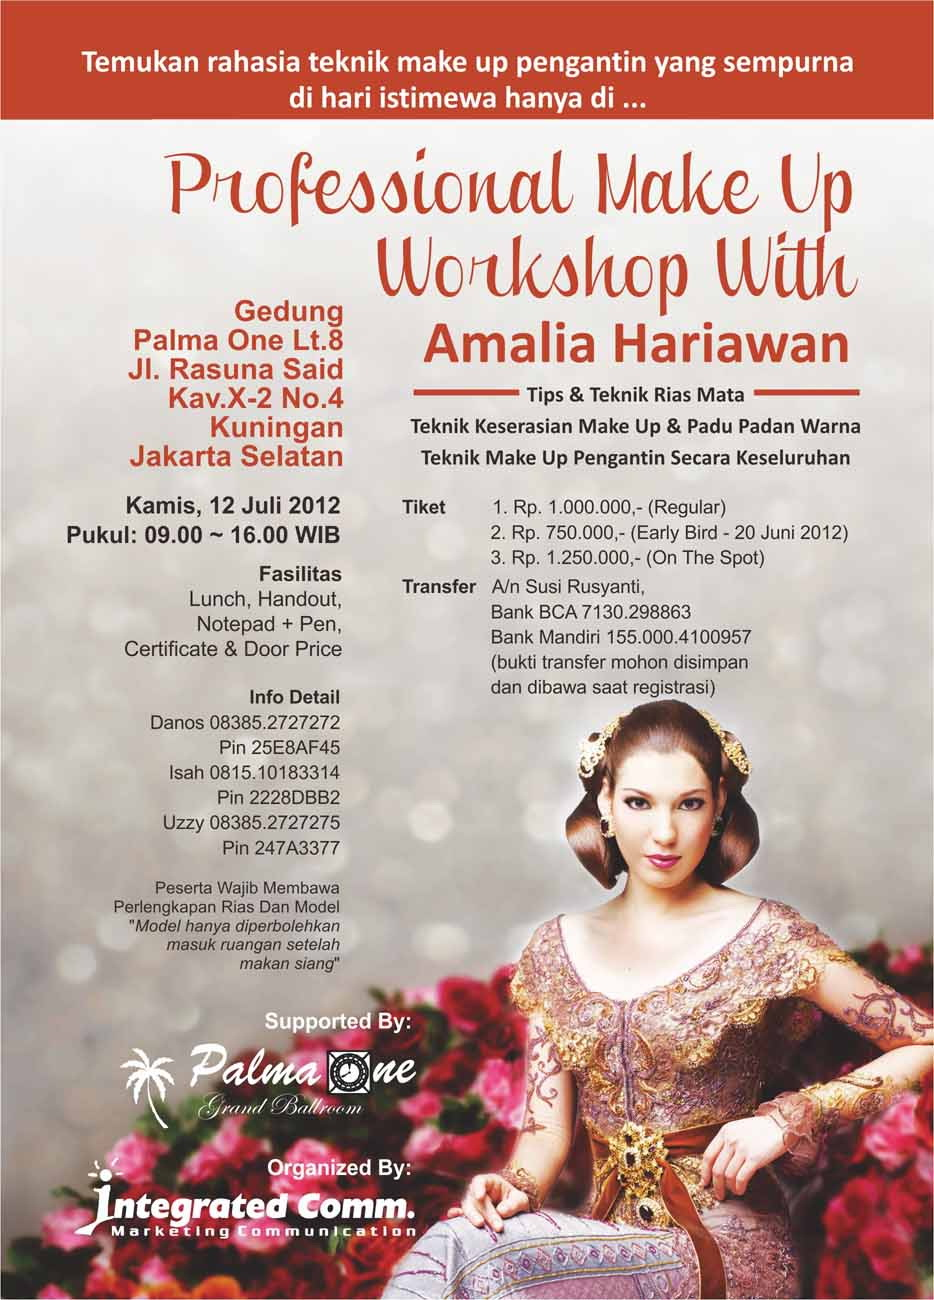 Professional Make Up Artist: Integrated Comm.: PROFESSIONAL MAKE UP WORKSHOP WITH